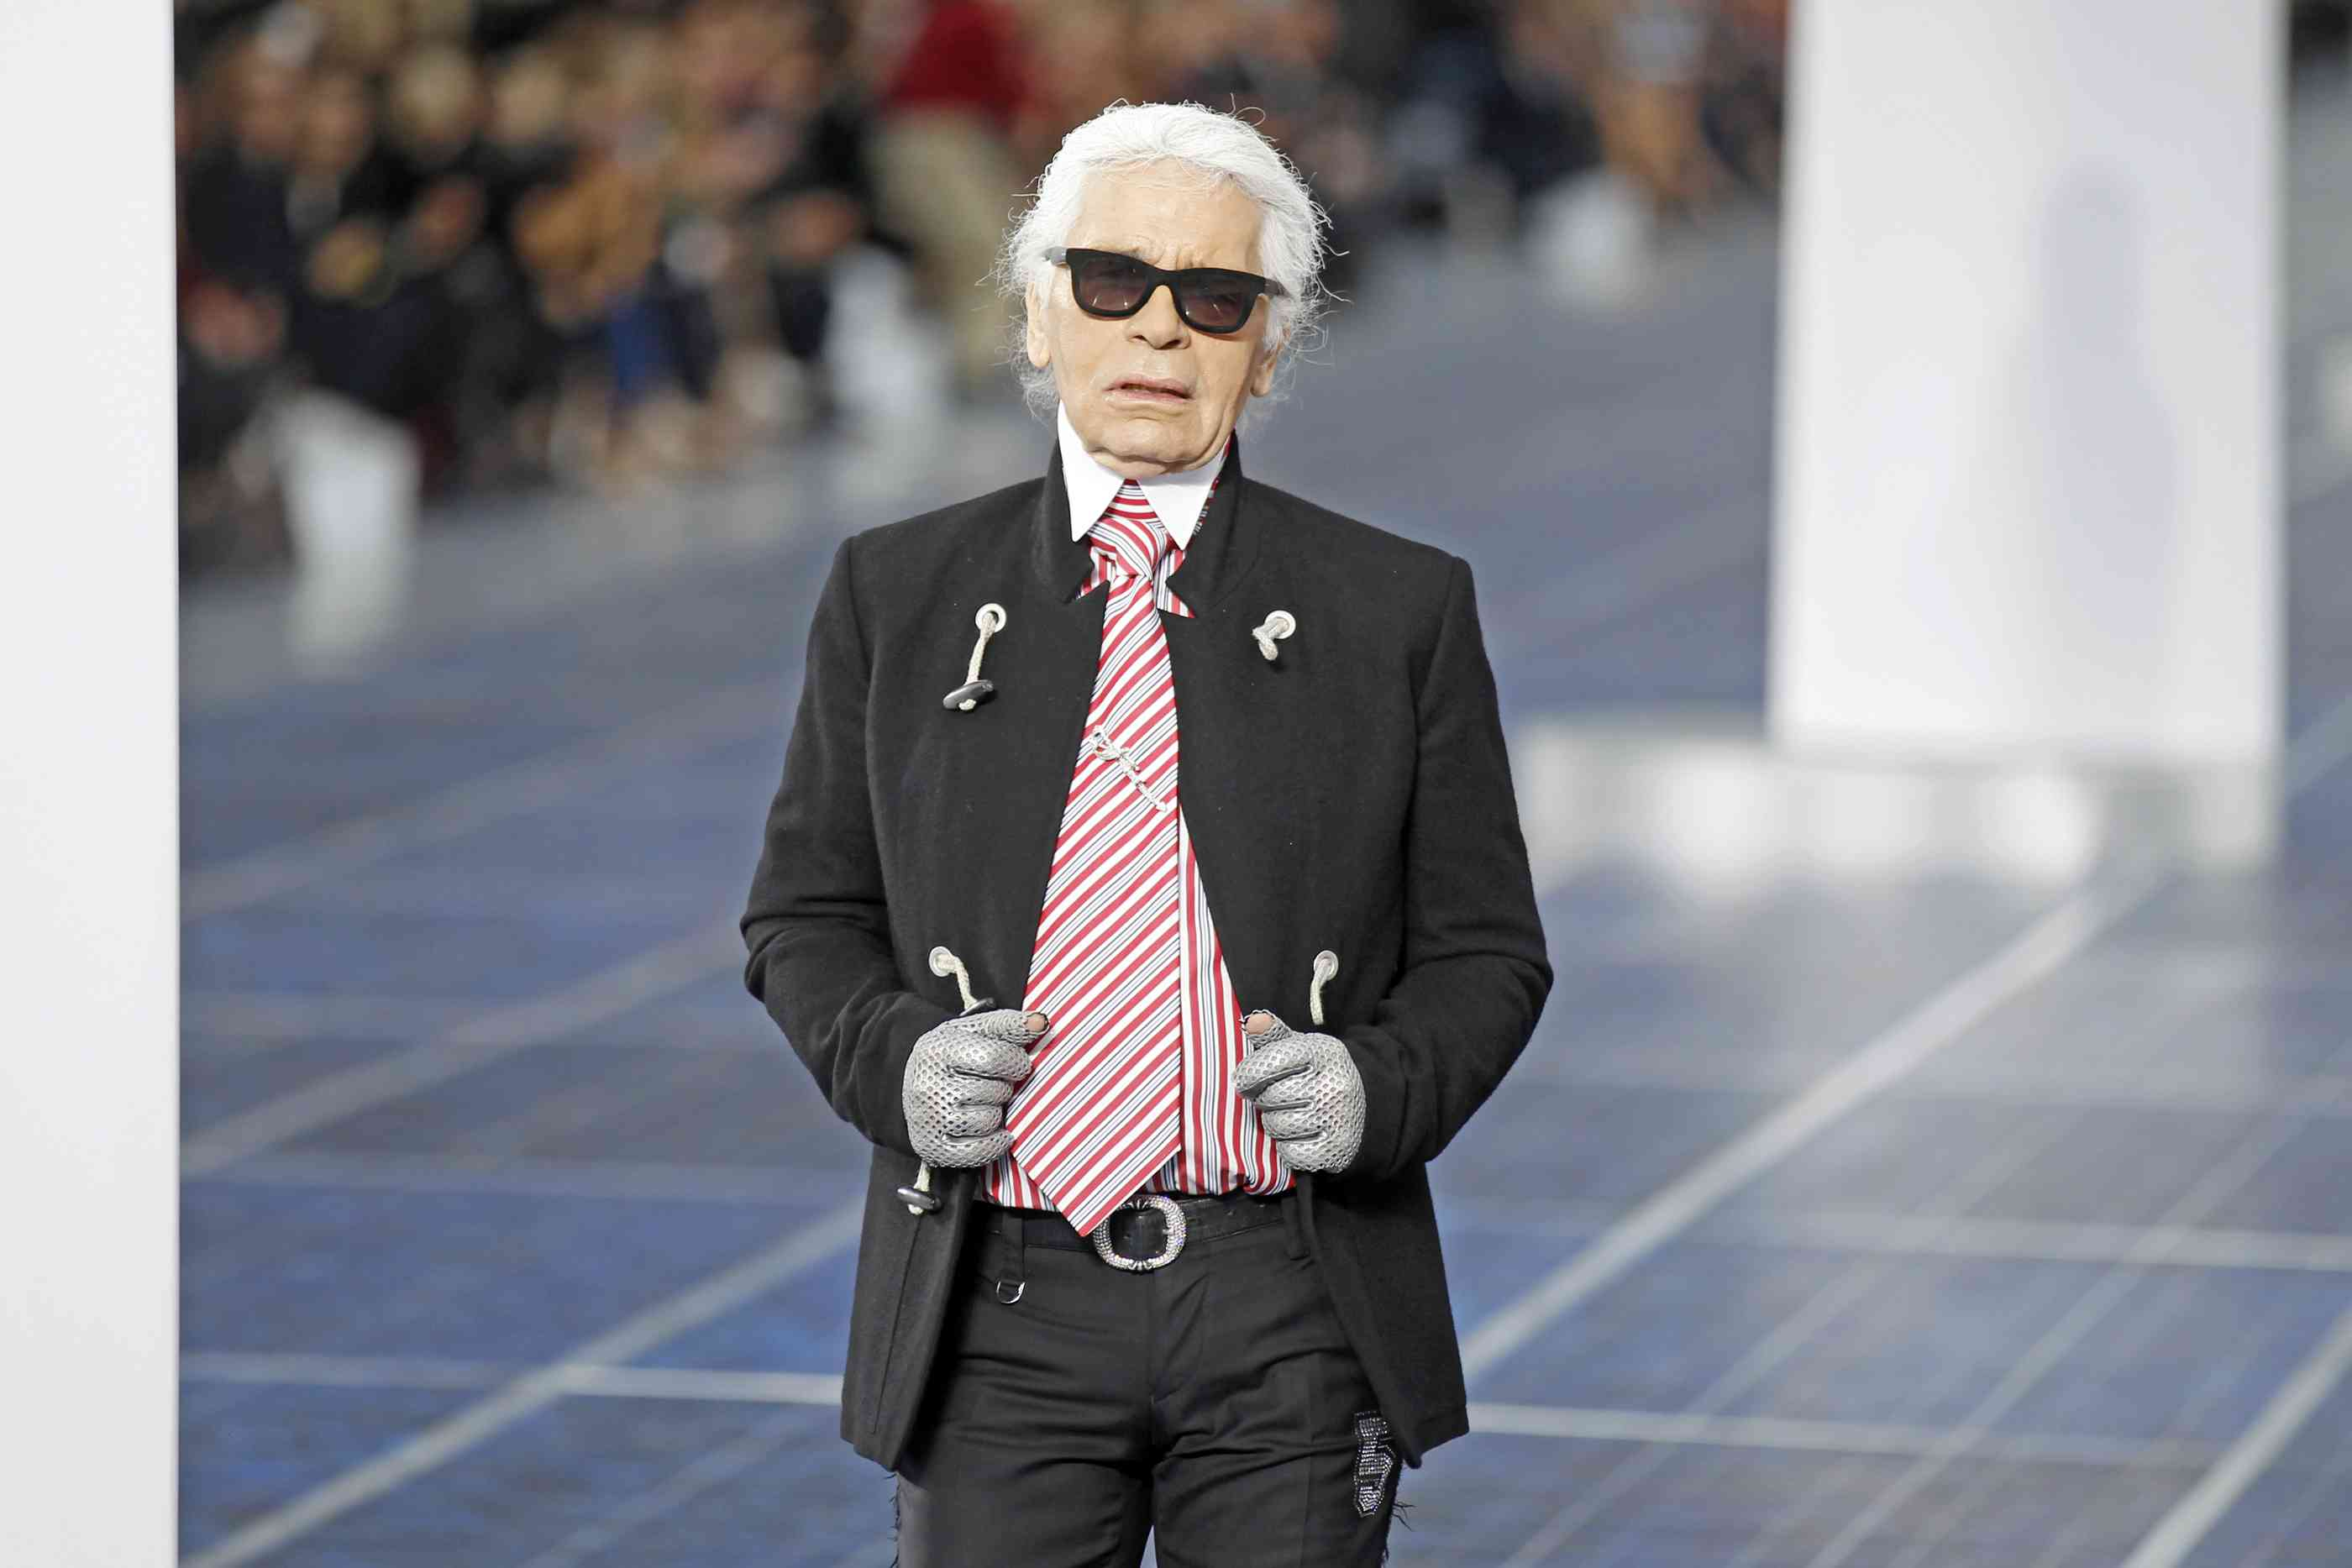 German designer Karl Lagerfeld appears at the end of his Spring/Summer 2013 women's ready-to-wear fashion show for French fashion house Chanel during Paris fashion week in 2012. Photo credit: Benoit Tessier/Reuters